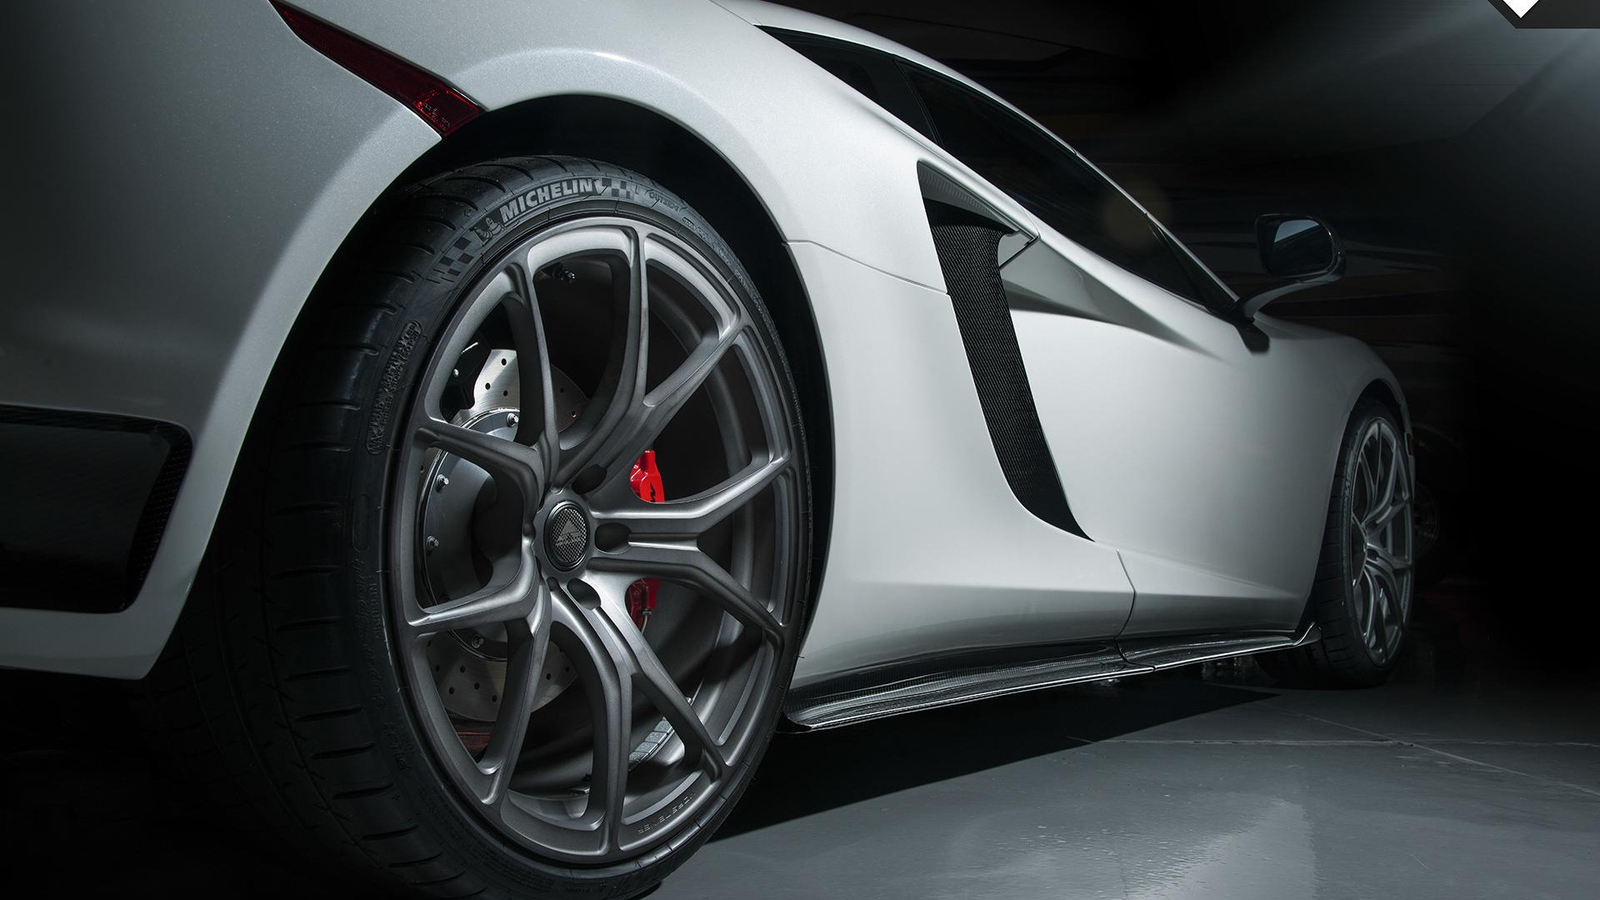 McLaren supercar wallpaper download 49749